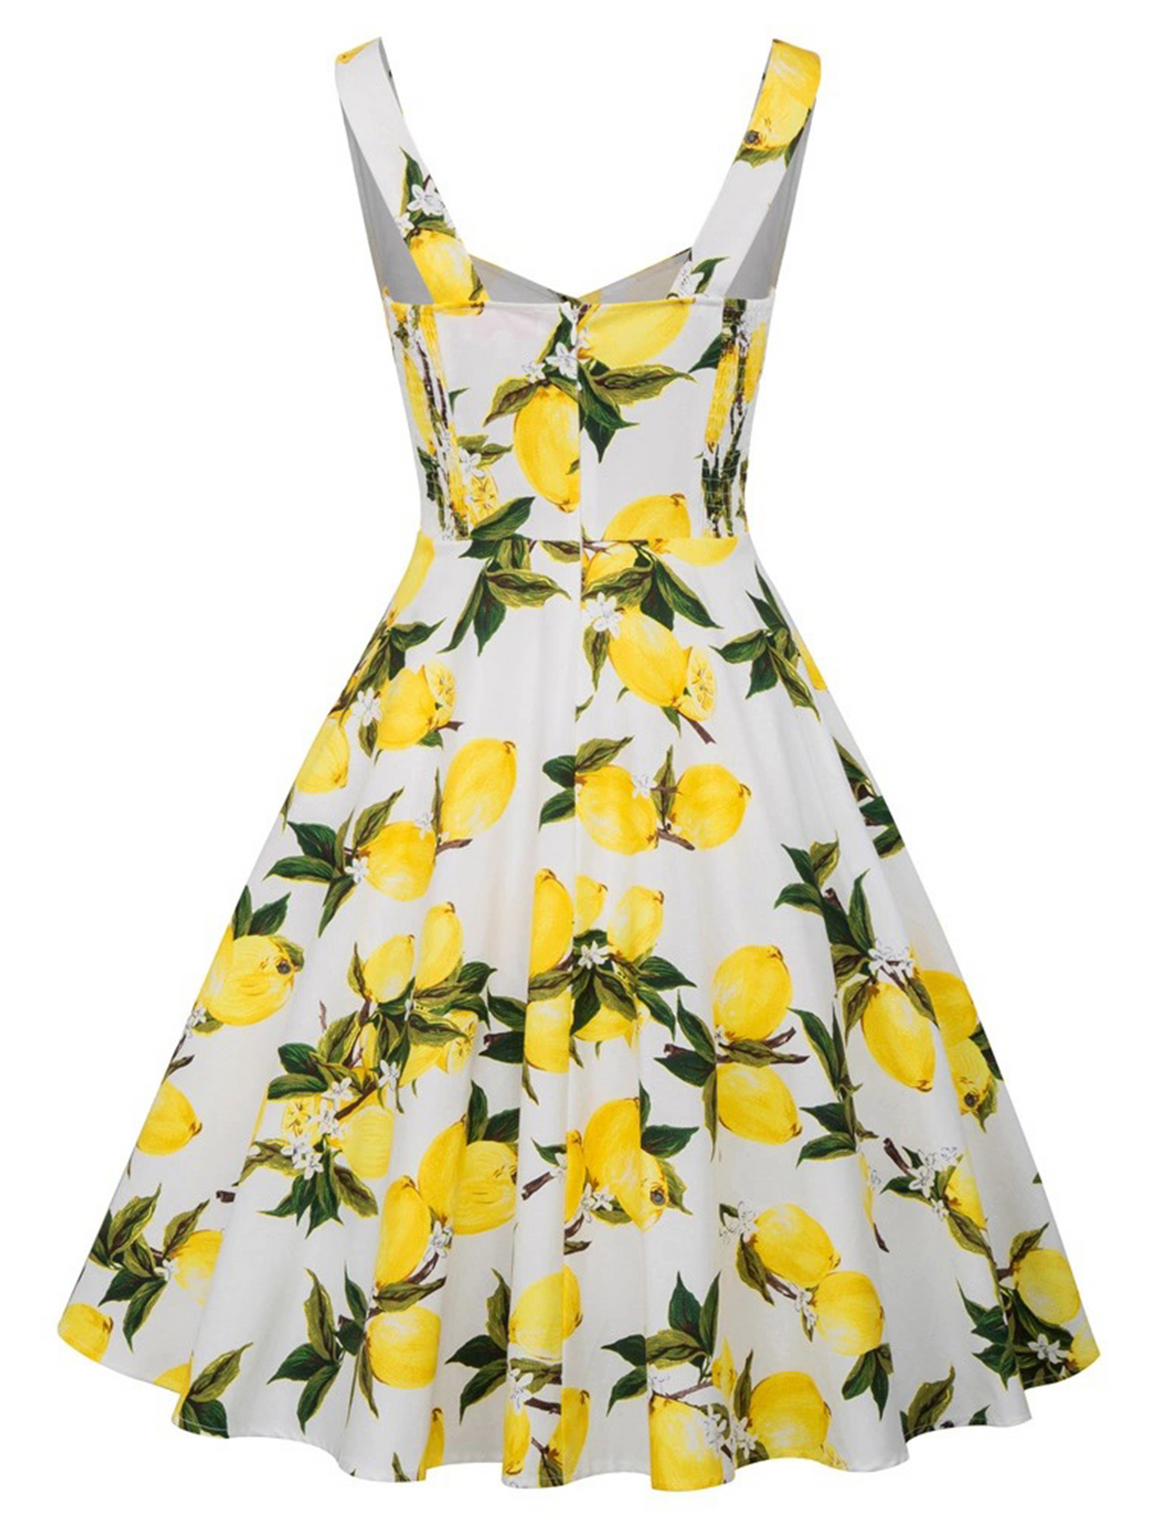 The Suzy Dress in white and lemon print by Ponyboy Vintage Clothing!